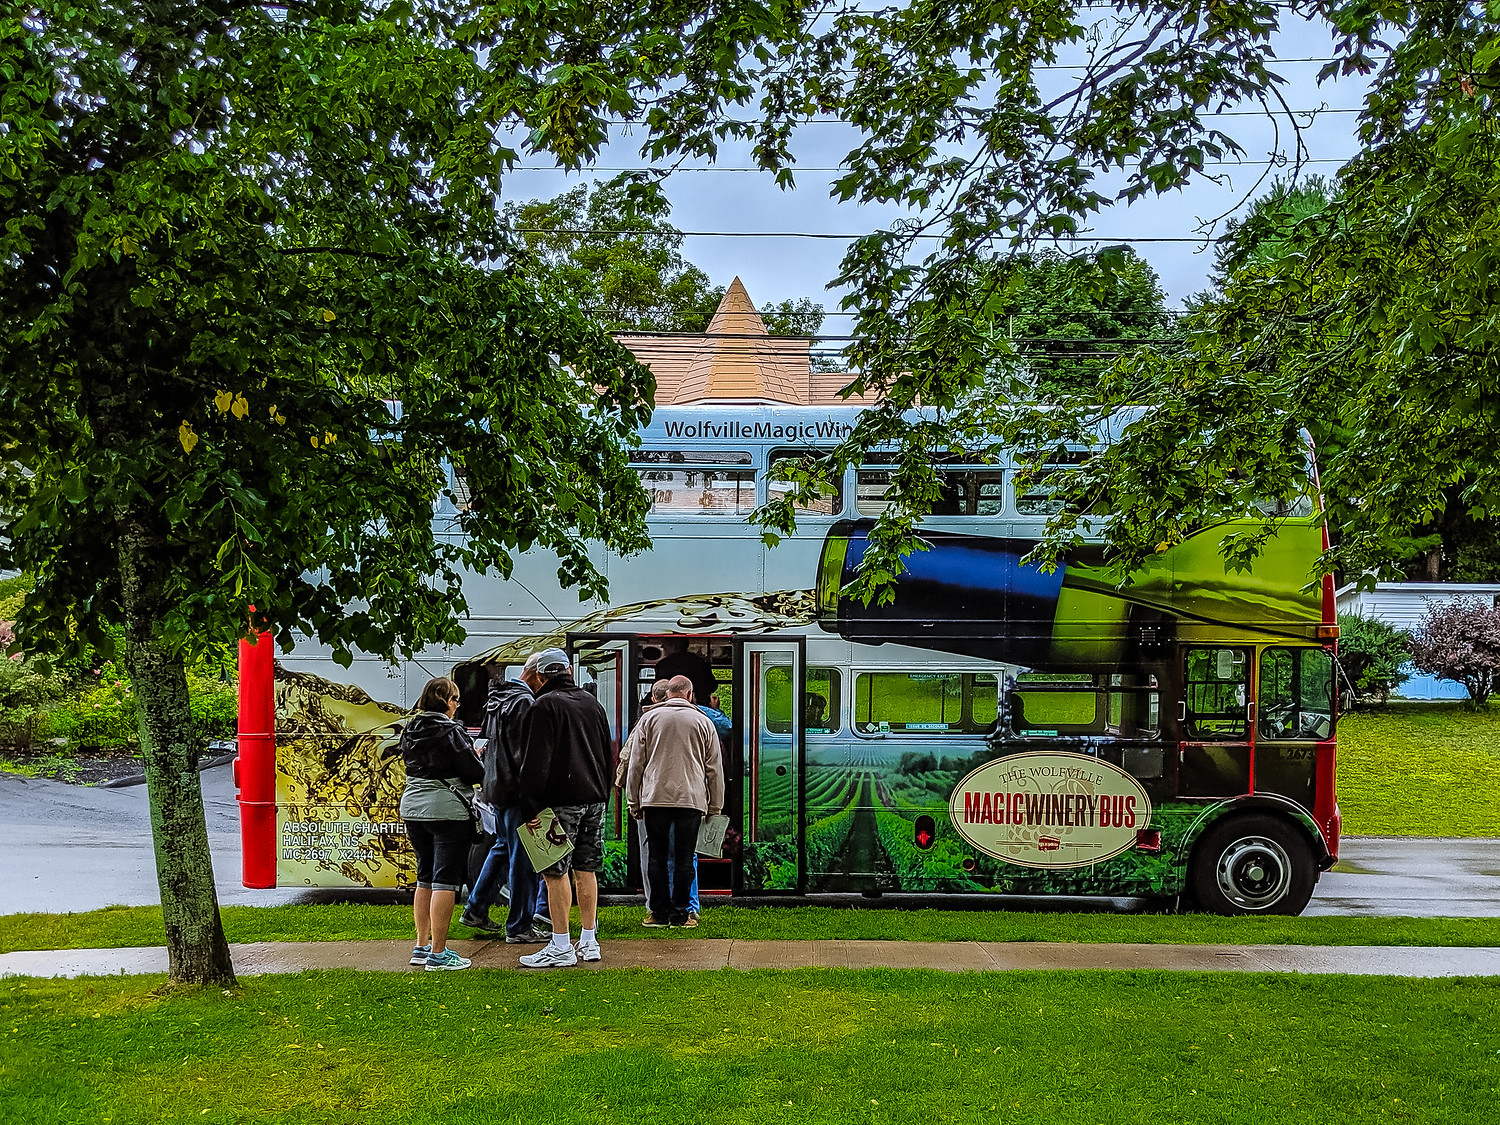 The Magic Wine Bus in Wolfville Nova Scotia